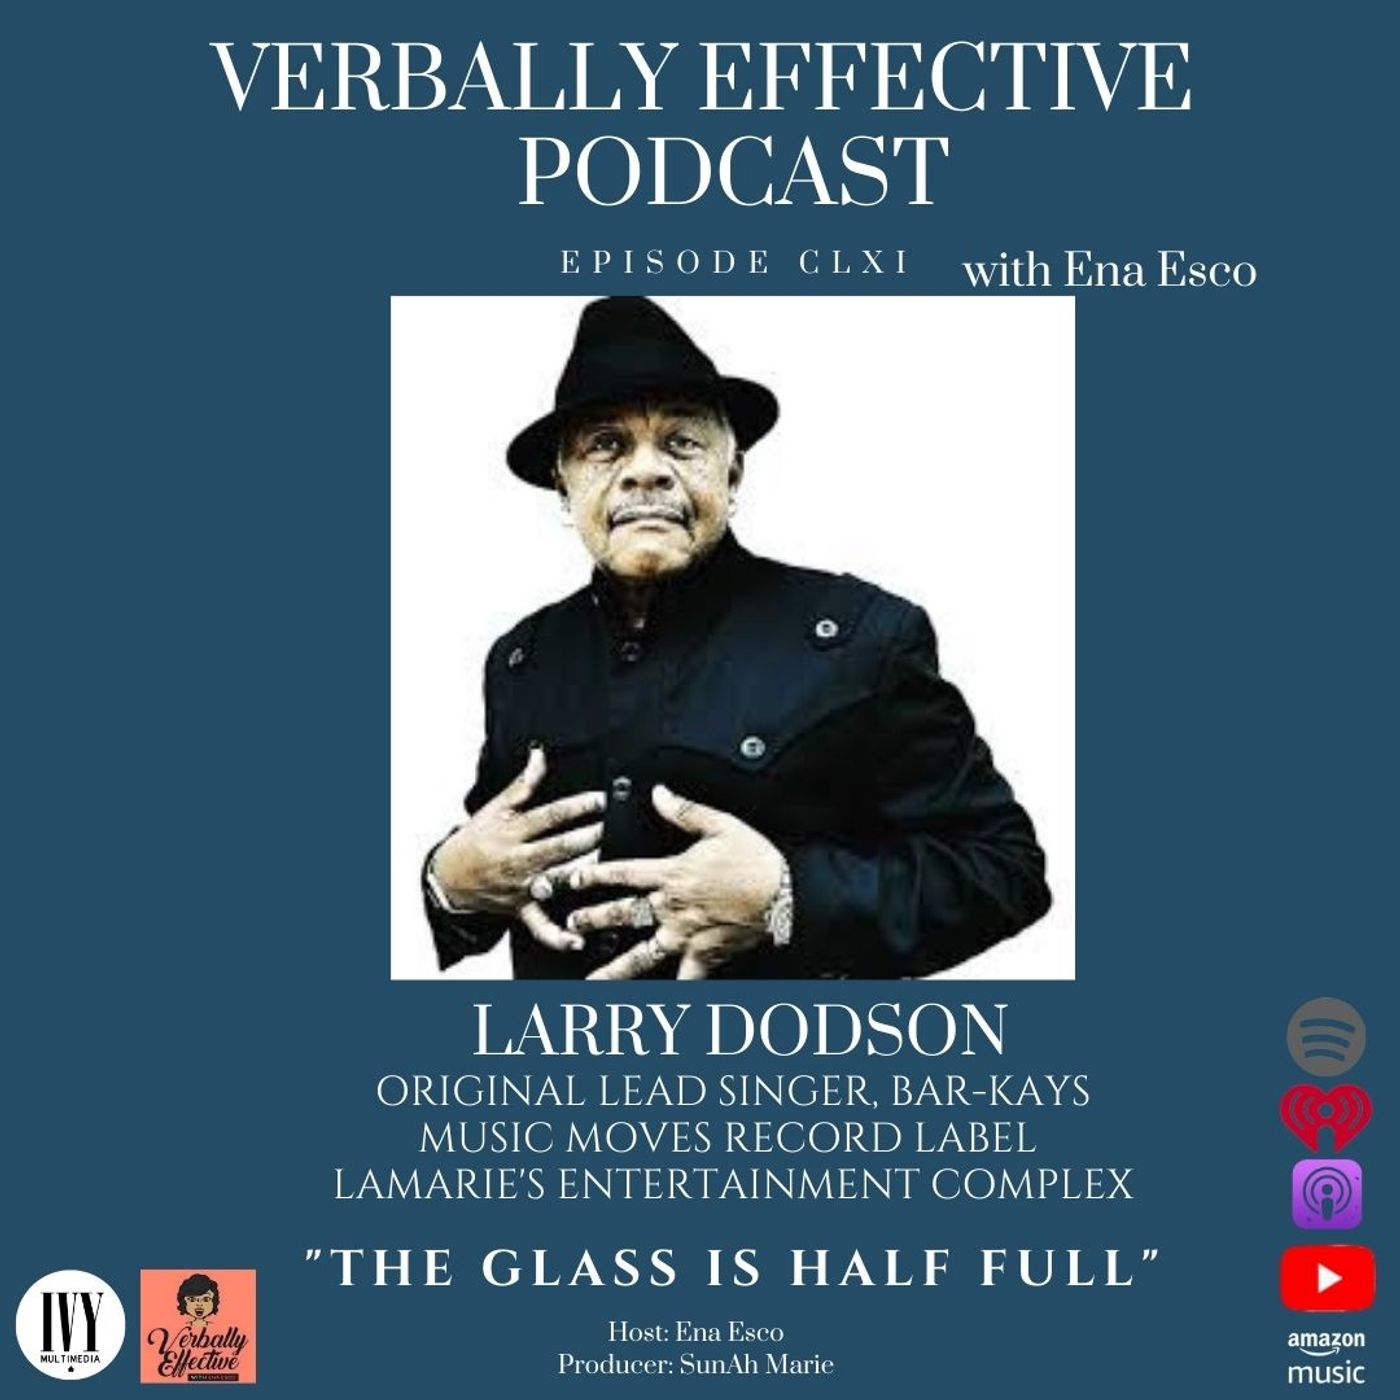 """EPISODE CLXI   """"THE GLASS IS HALF FULL"""" w/ LARRY DODSON"""